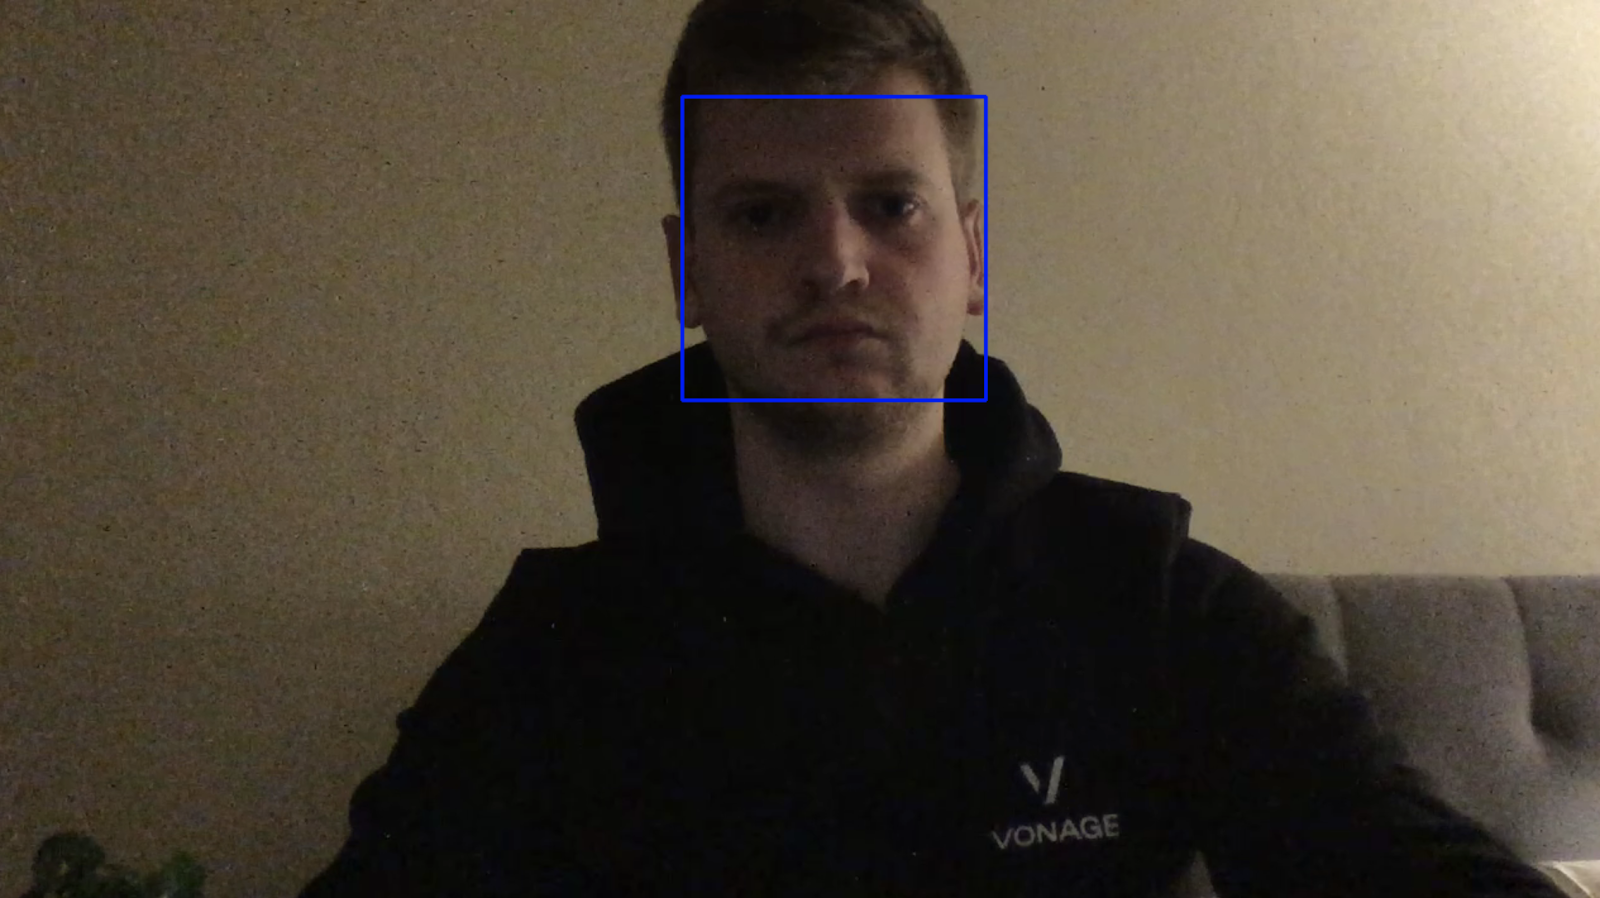 Example below of my face being detected